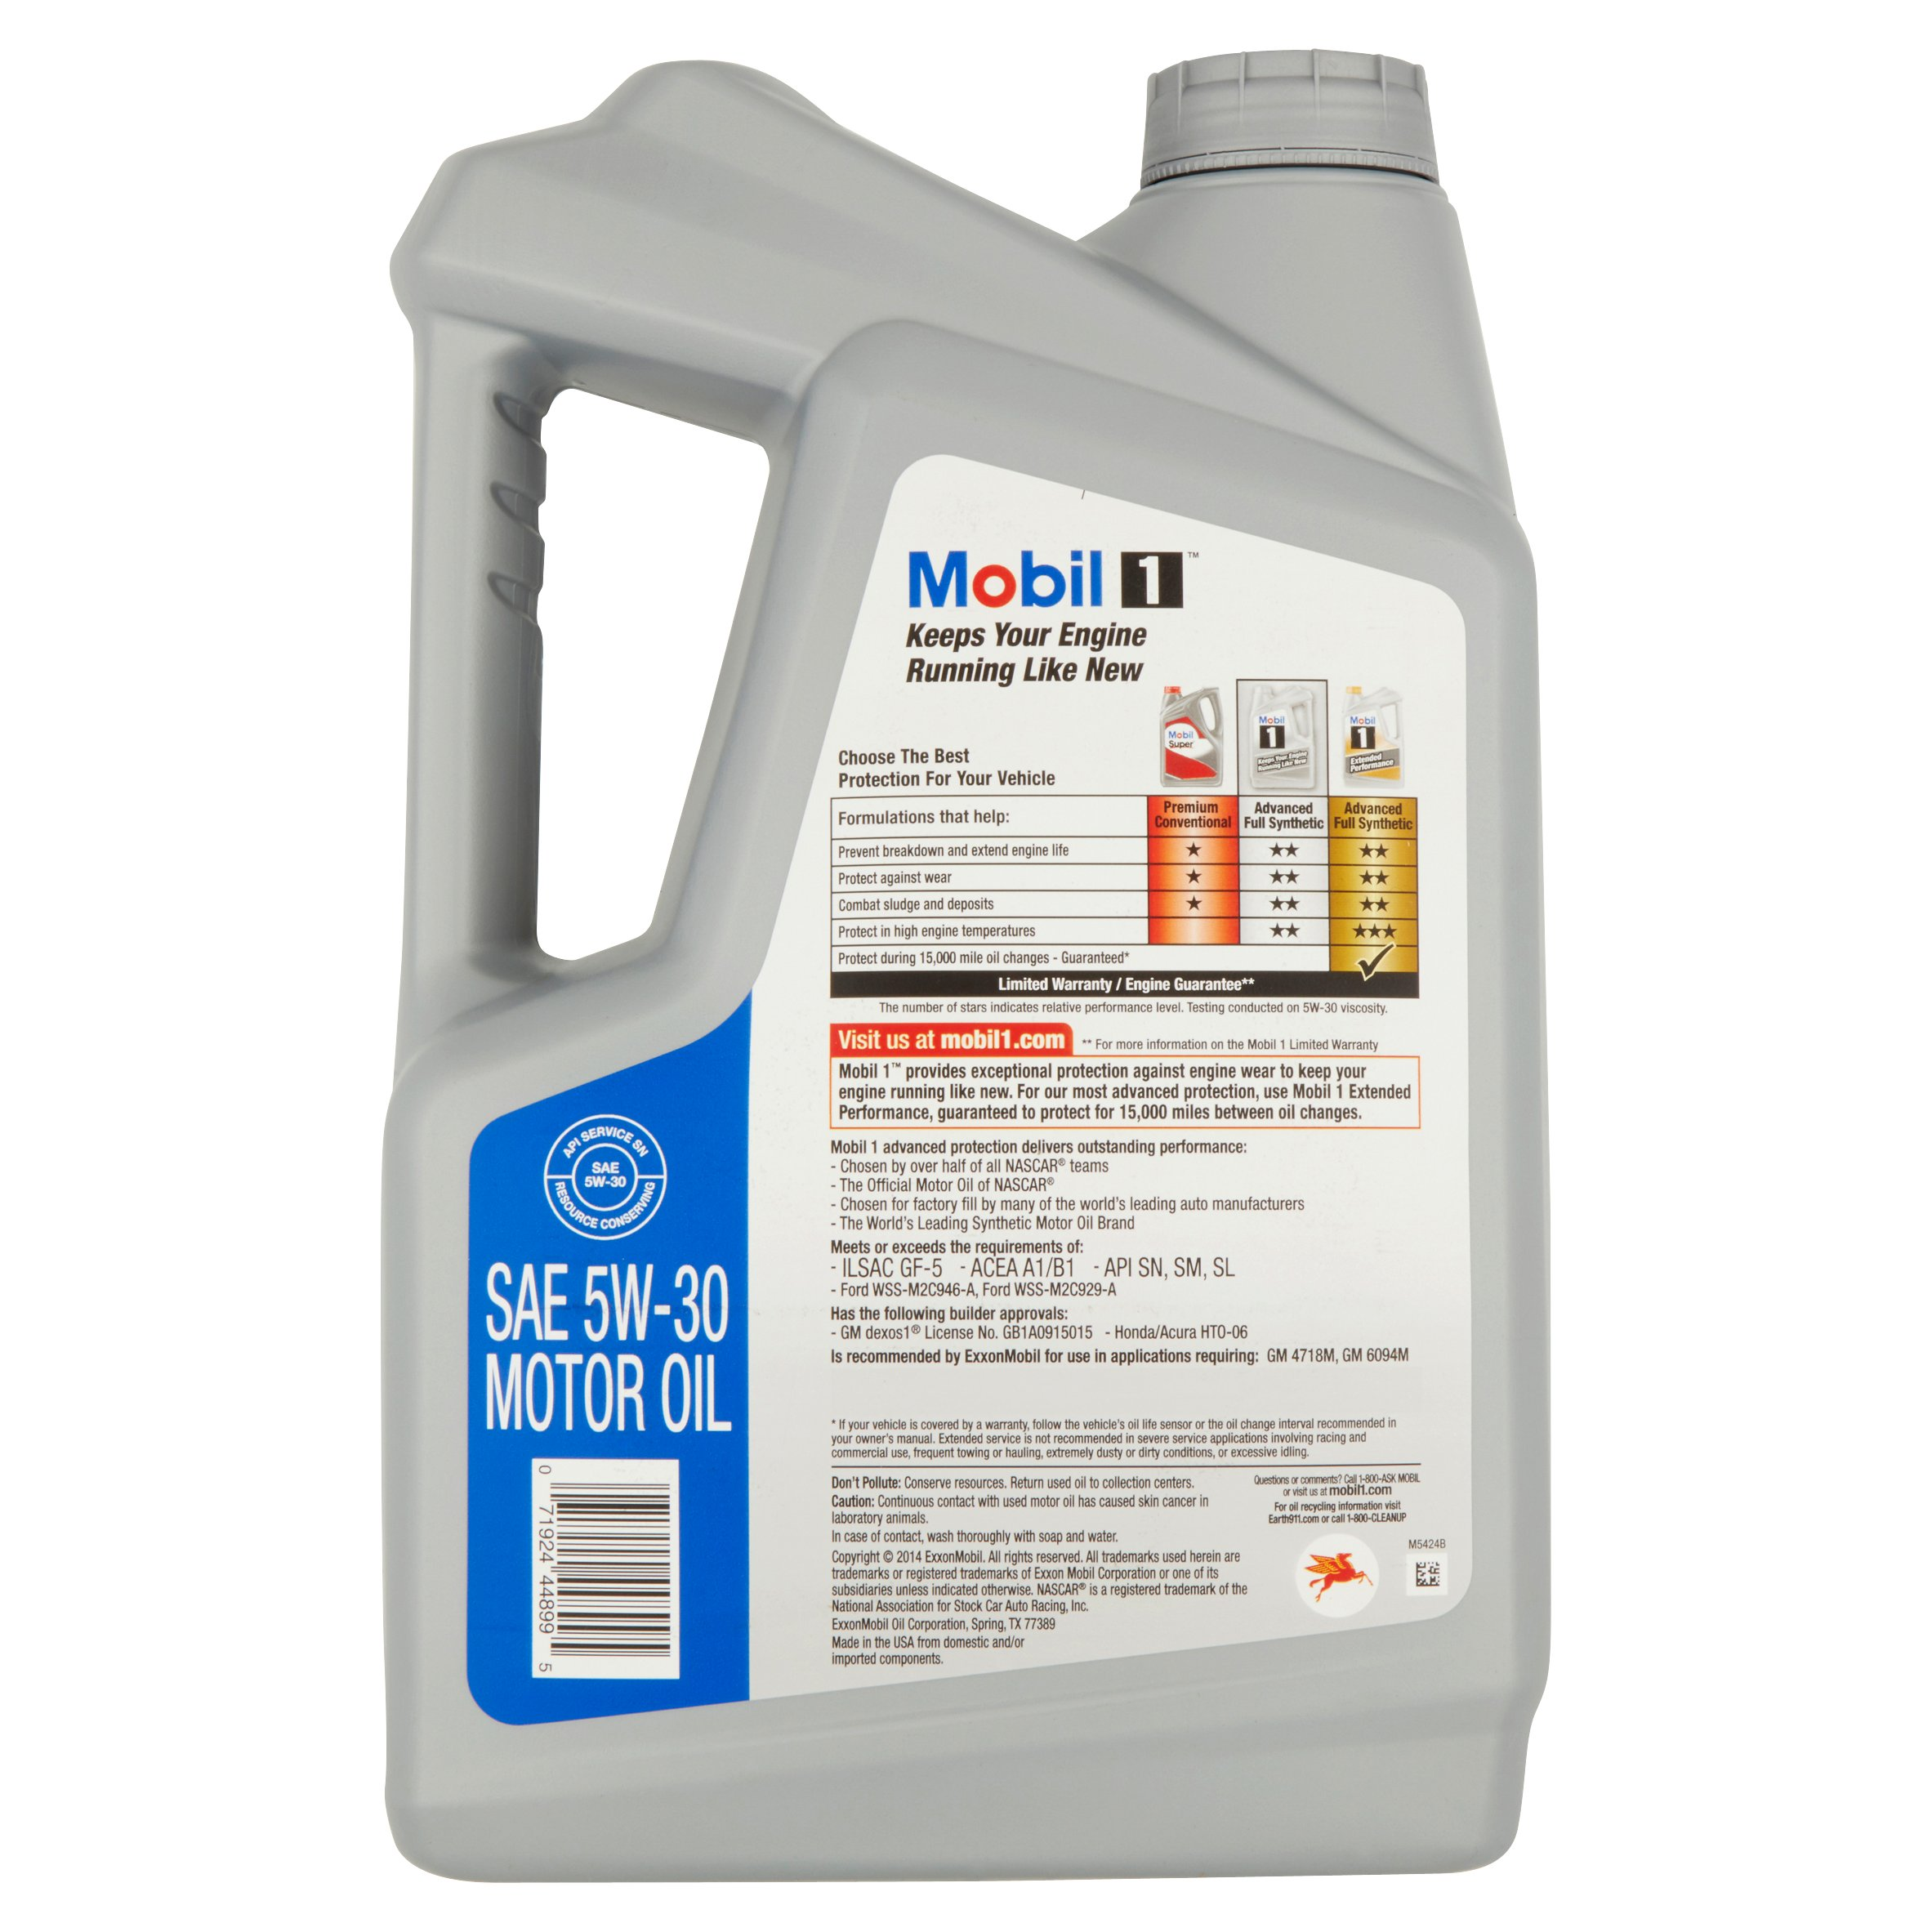 Keep your engine running like new with the help of this Mobil 1 0W Full-Synthetic Motor Oil. It is an advanced full-synthetic engine oil that is designed to provide exceptional wear protection, cleaning power and overall performance.